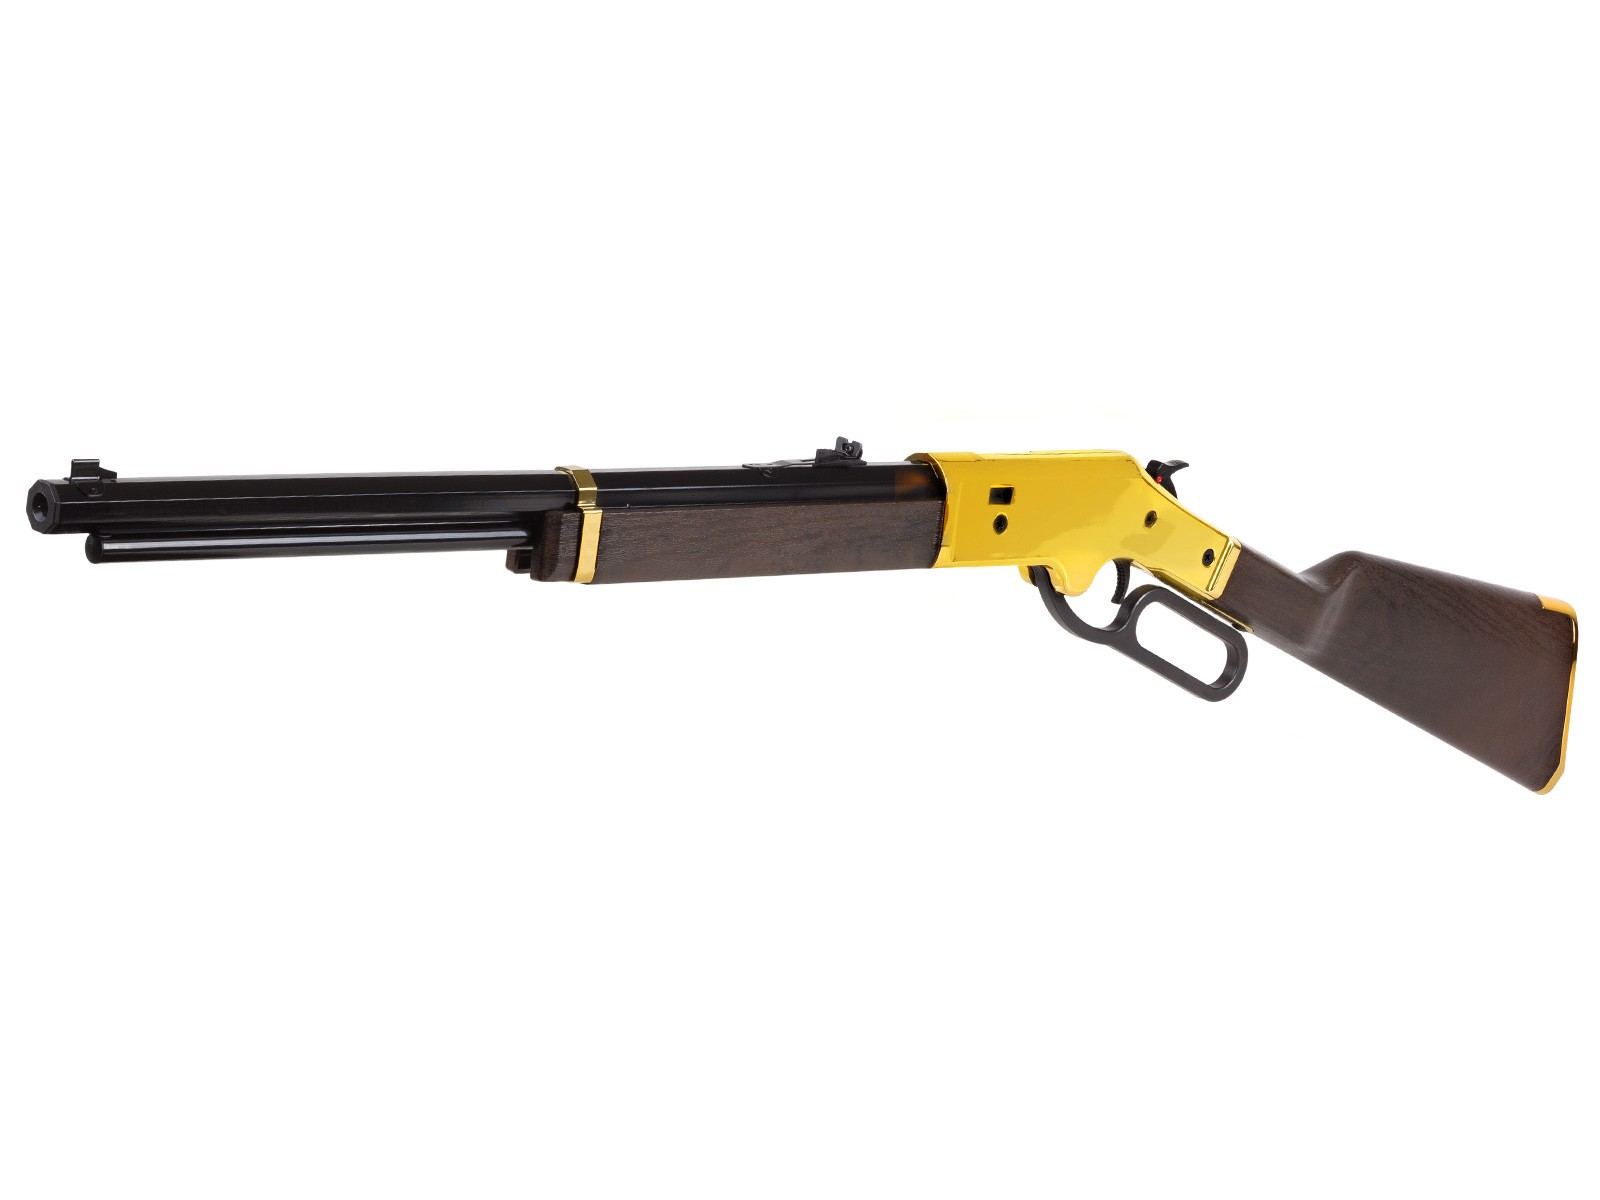 Barra Cowboy Series 1866 .177 BB/Pellet Air Rifle 0.177